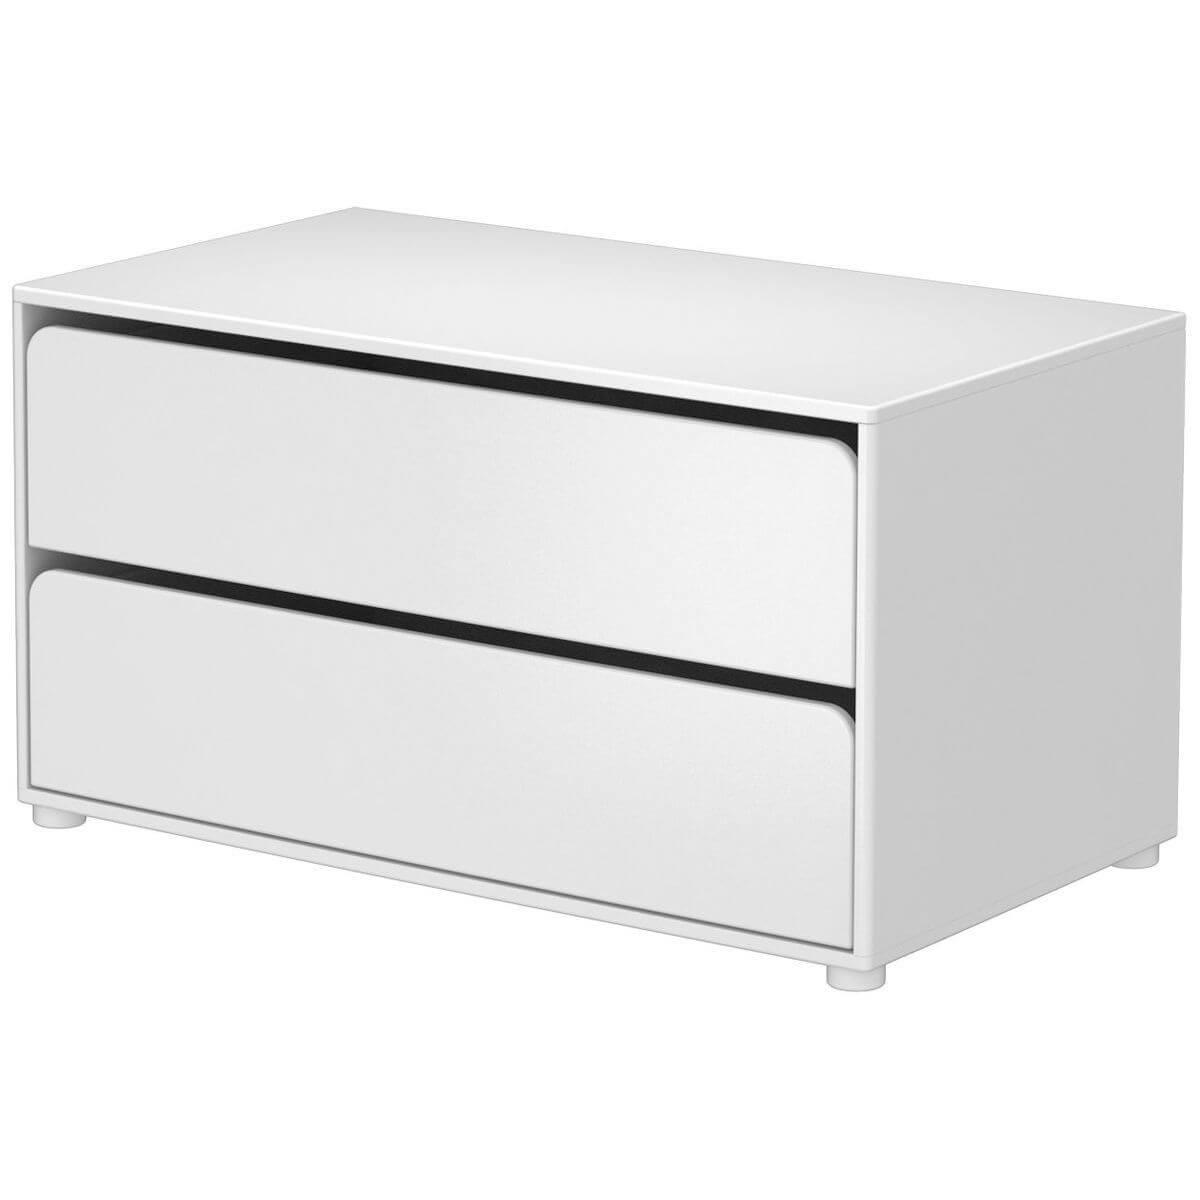 CABBY by Flexa Commode basse 2 tiroirs Blanc